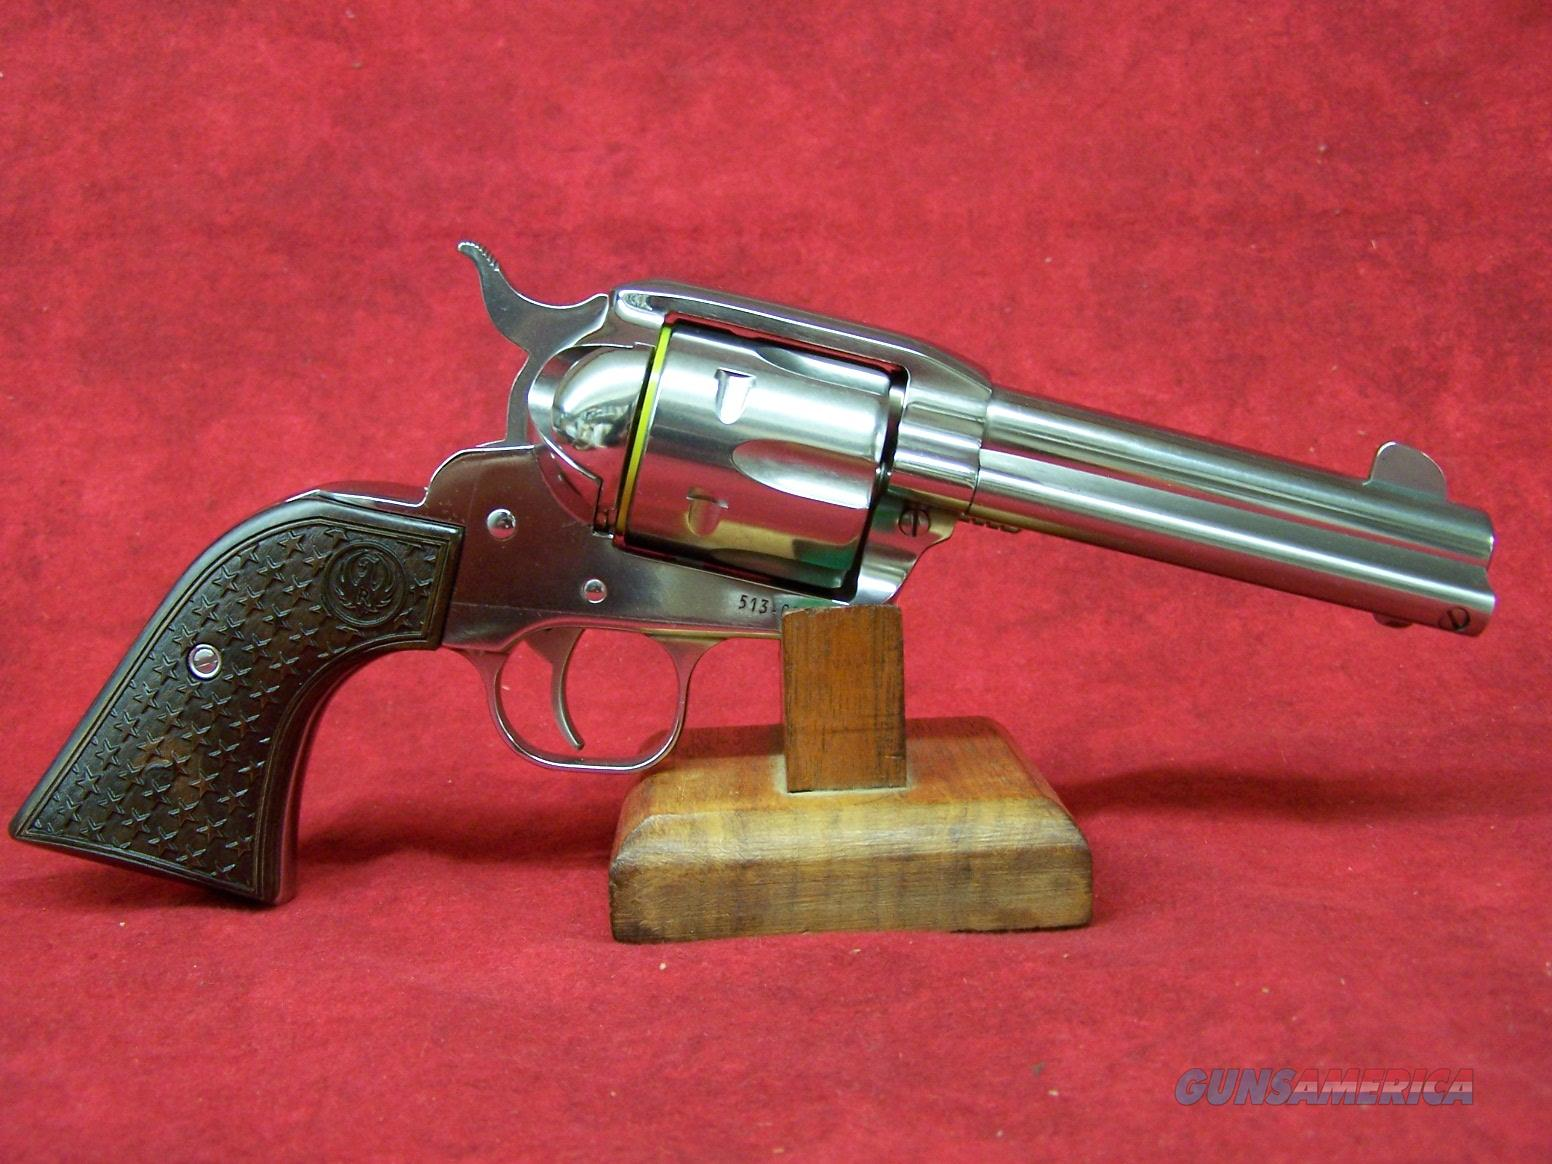 "RUGER TALO VAQUERO 357MAG 4 5/8"" FAST DRAW SS (05159)  Guns > Pistols > Ruger Single Action Revolvers > Single Six Type"